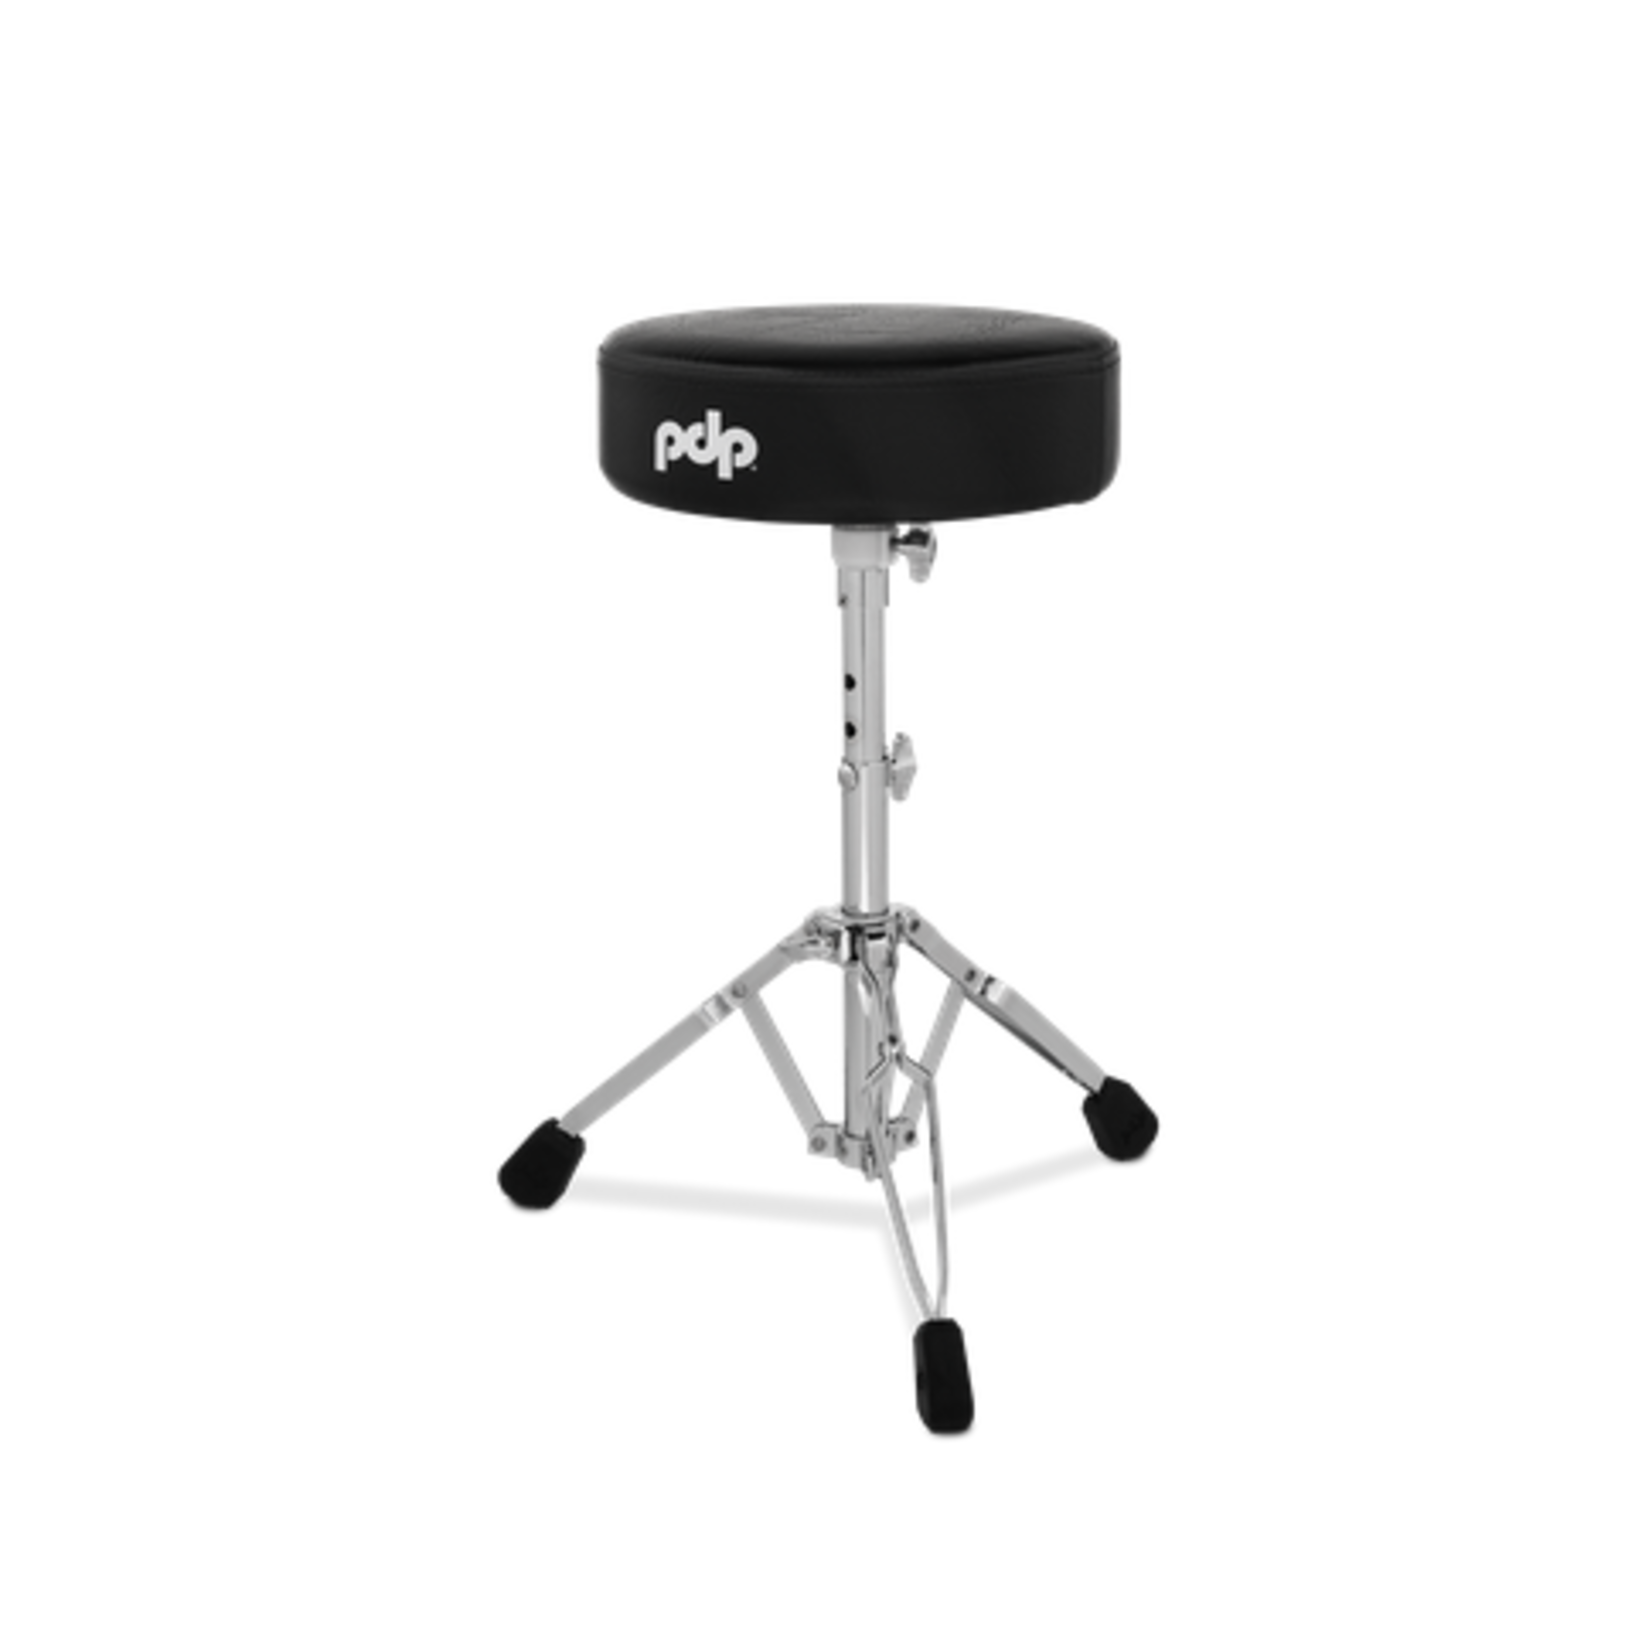 PDP PDP 700 SERIES ROUND THRONE PDDT710R